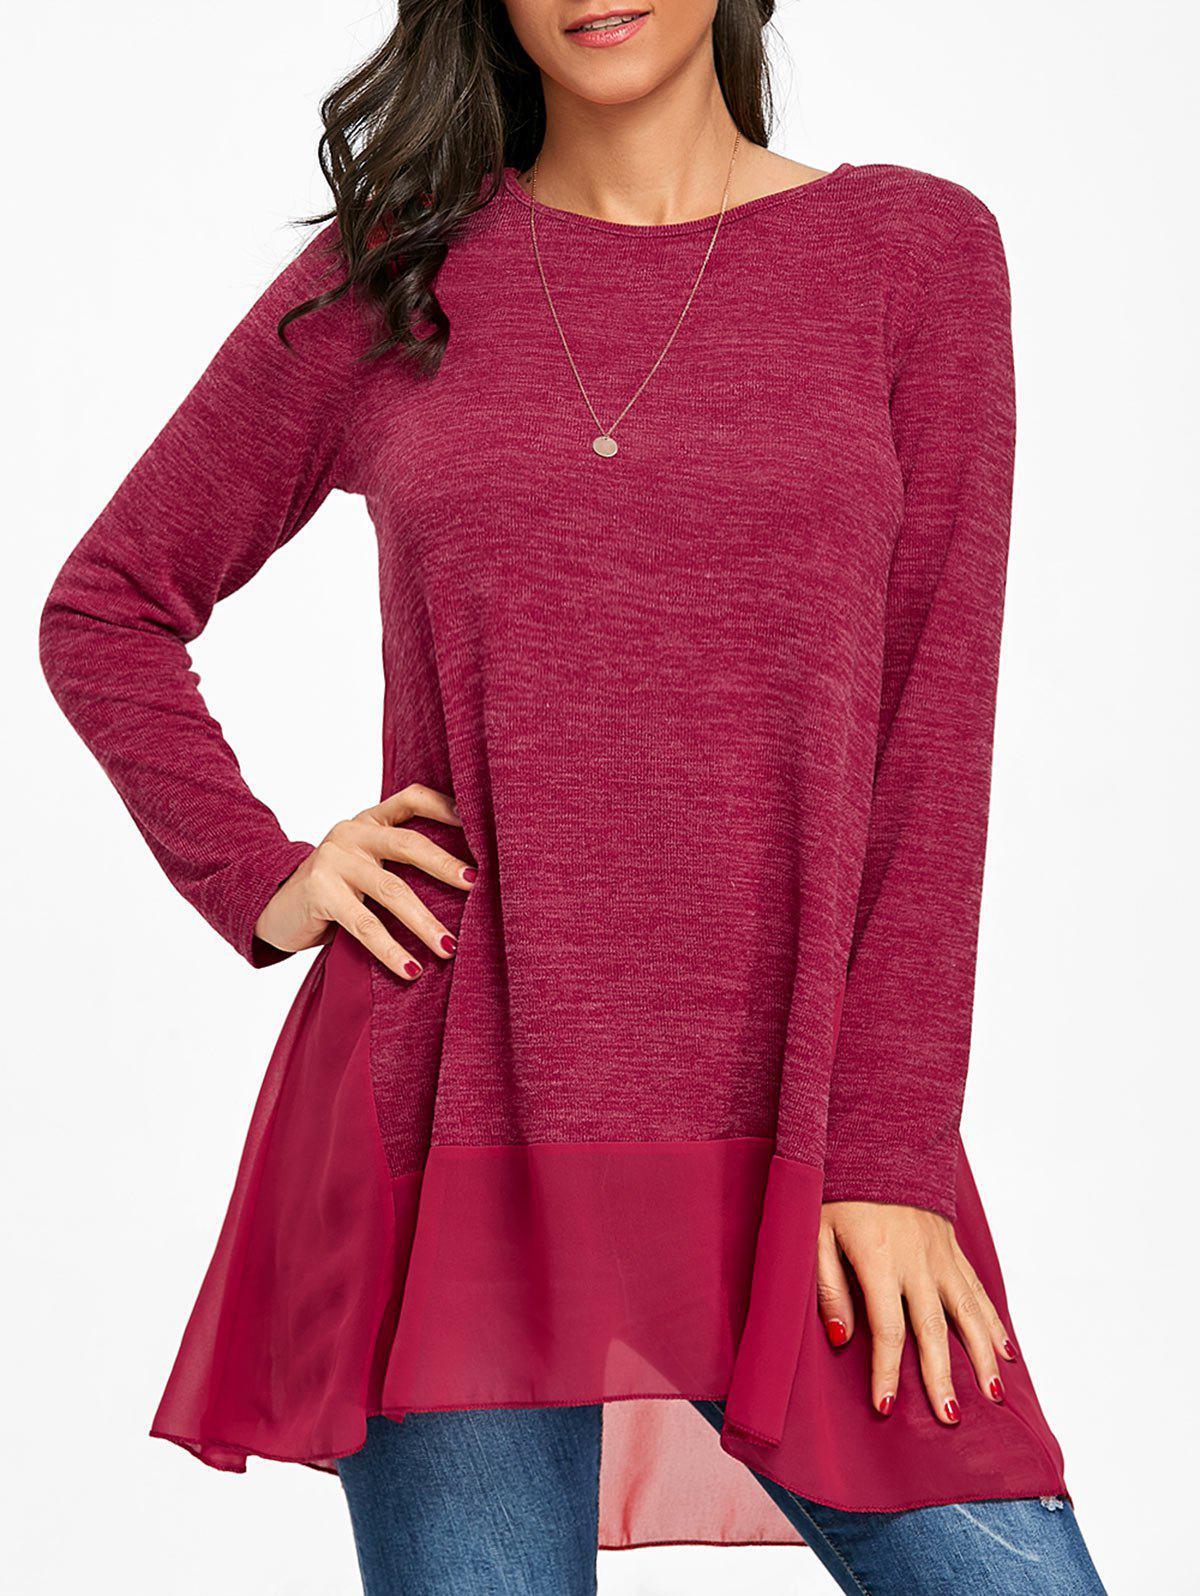 Heather Chiffon Trimmed Long Sleeve Top - BURGUNDY S